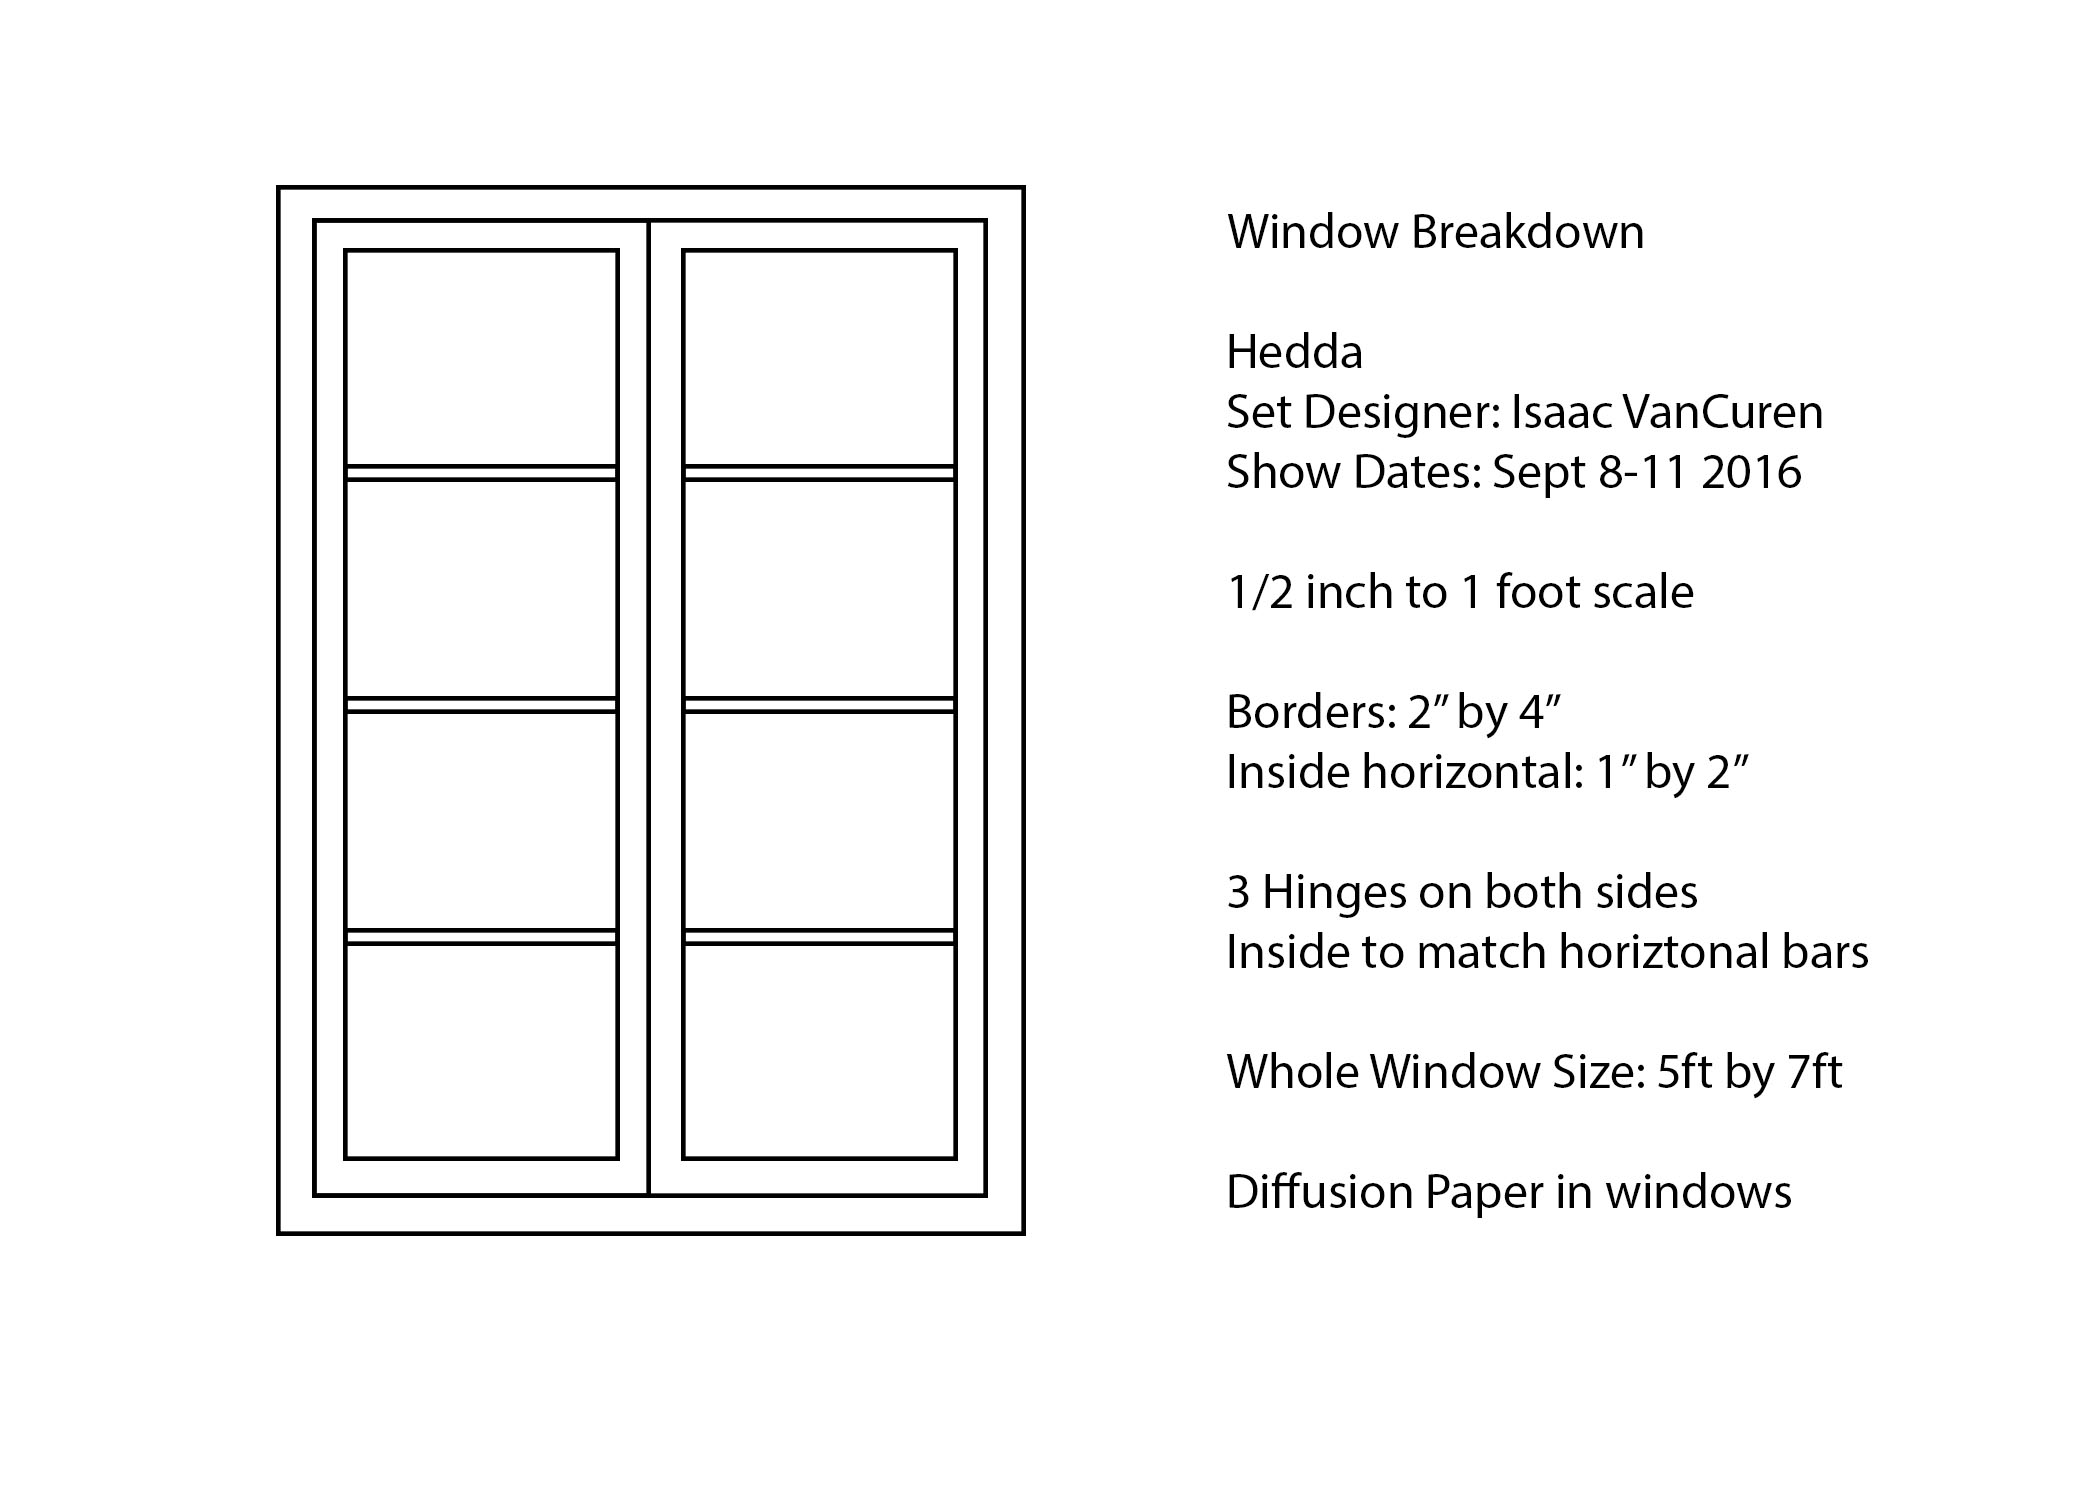 window breakdown